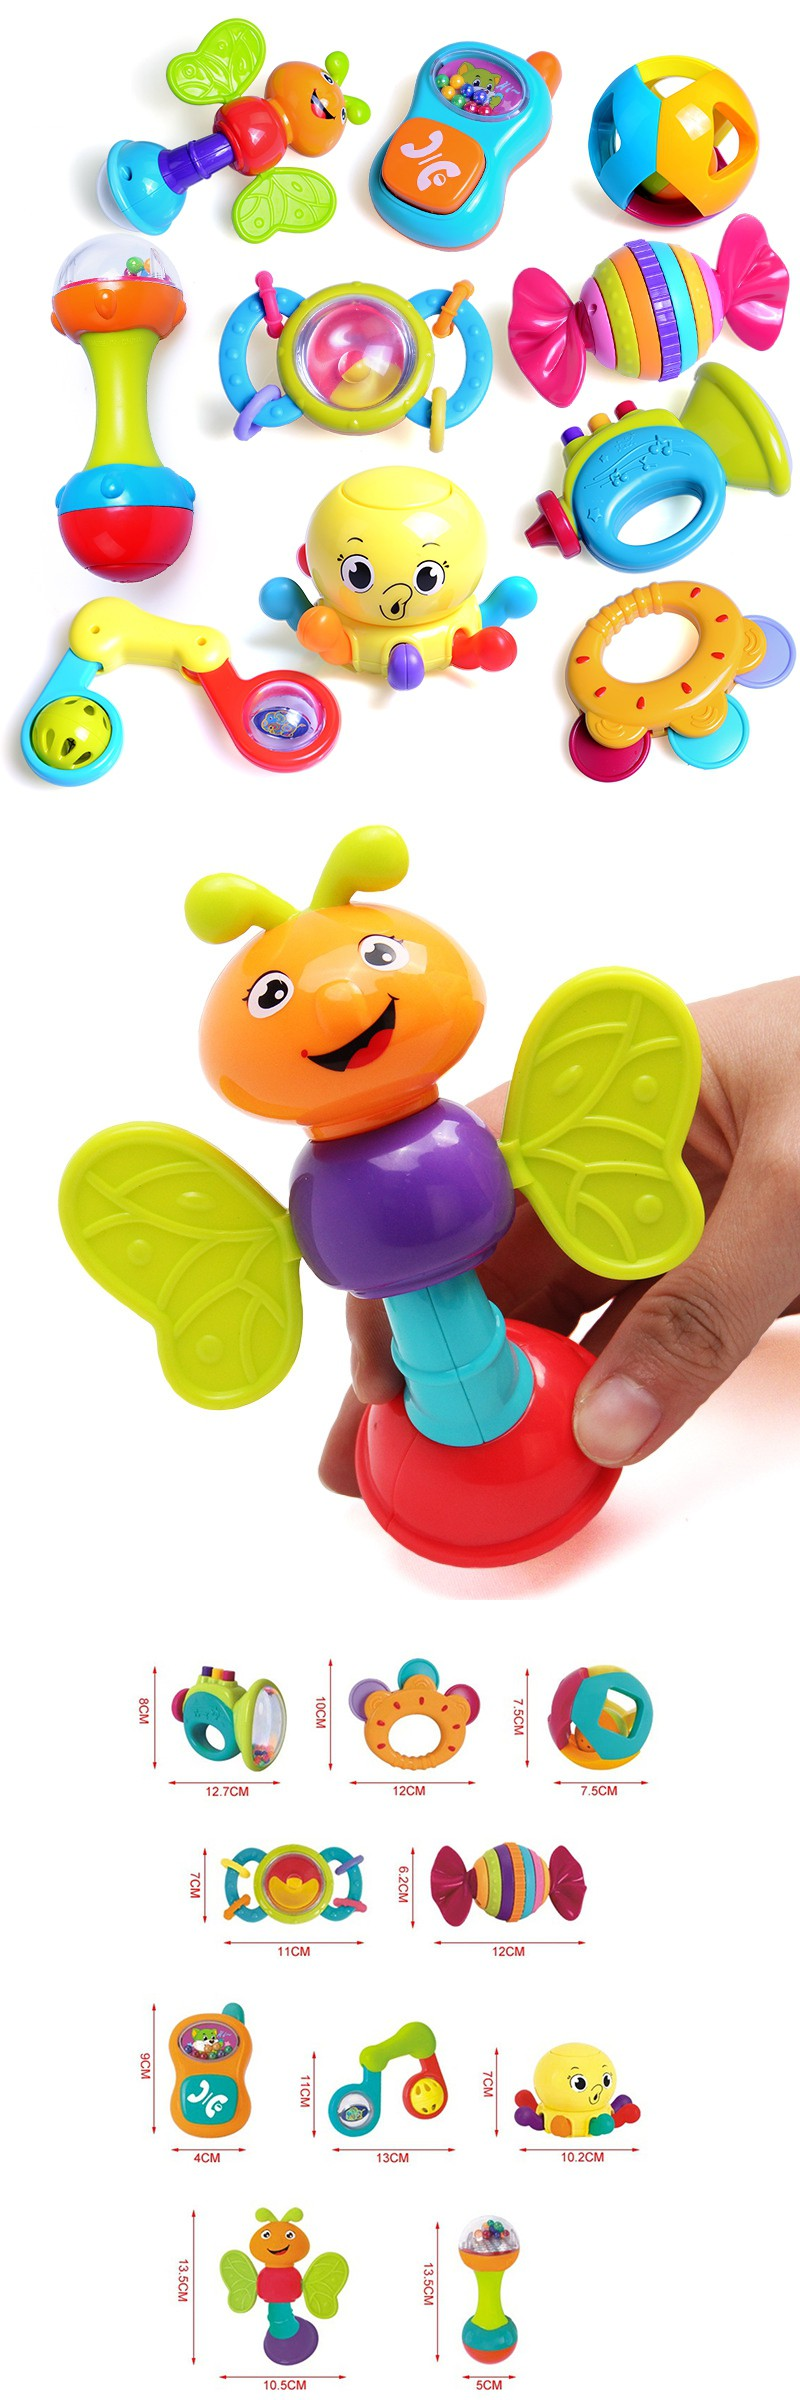 10 Pcs High Quality Colorful Baby Toy Rattles and Mobile Phone